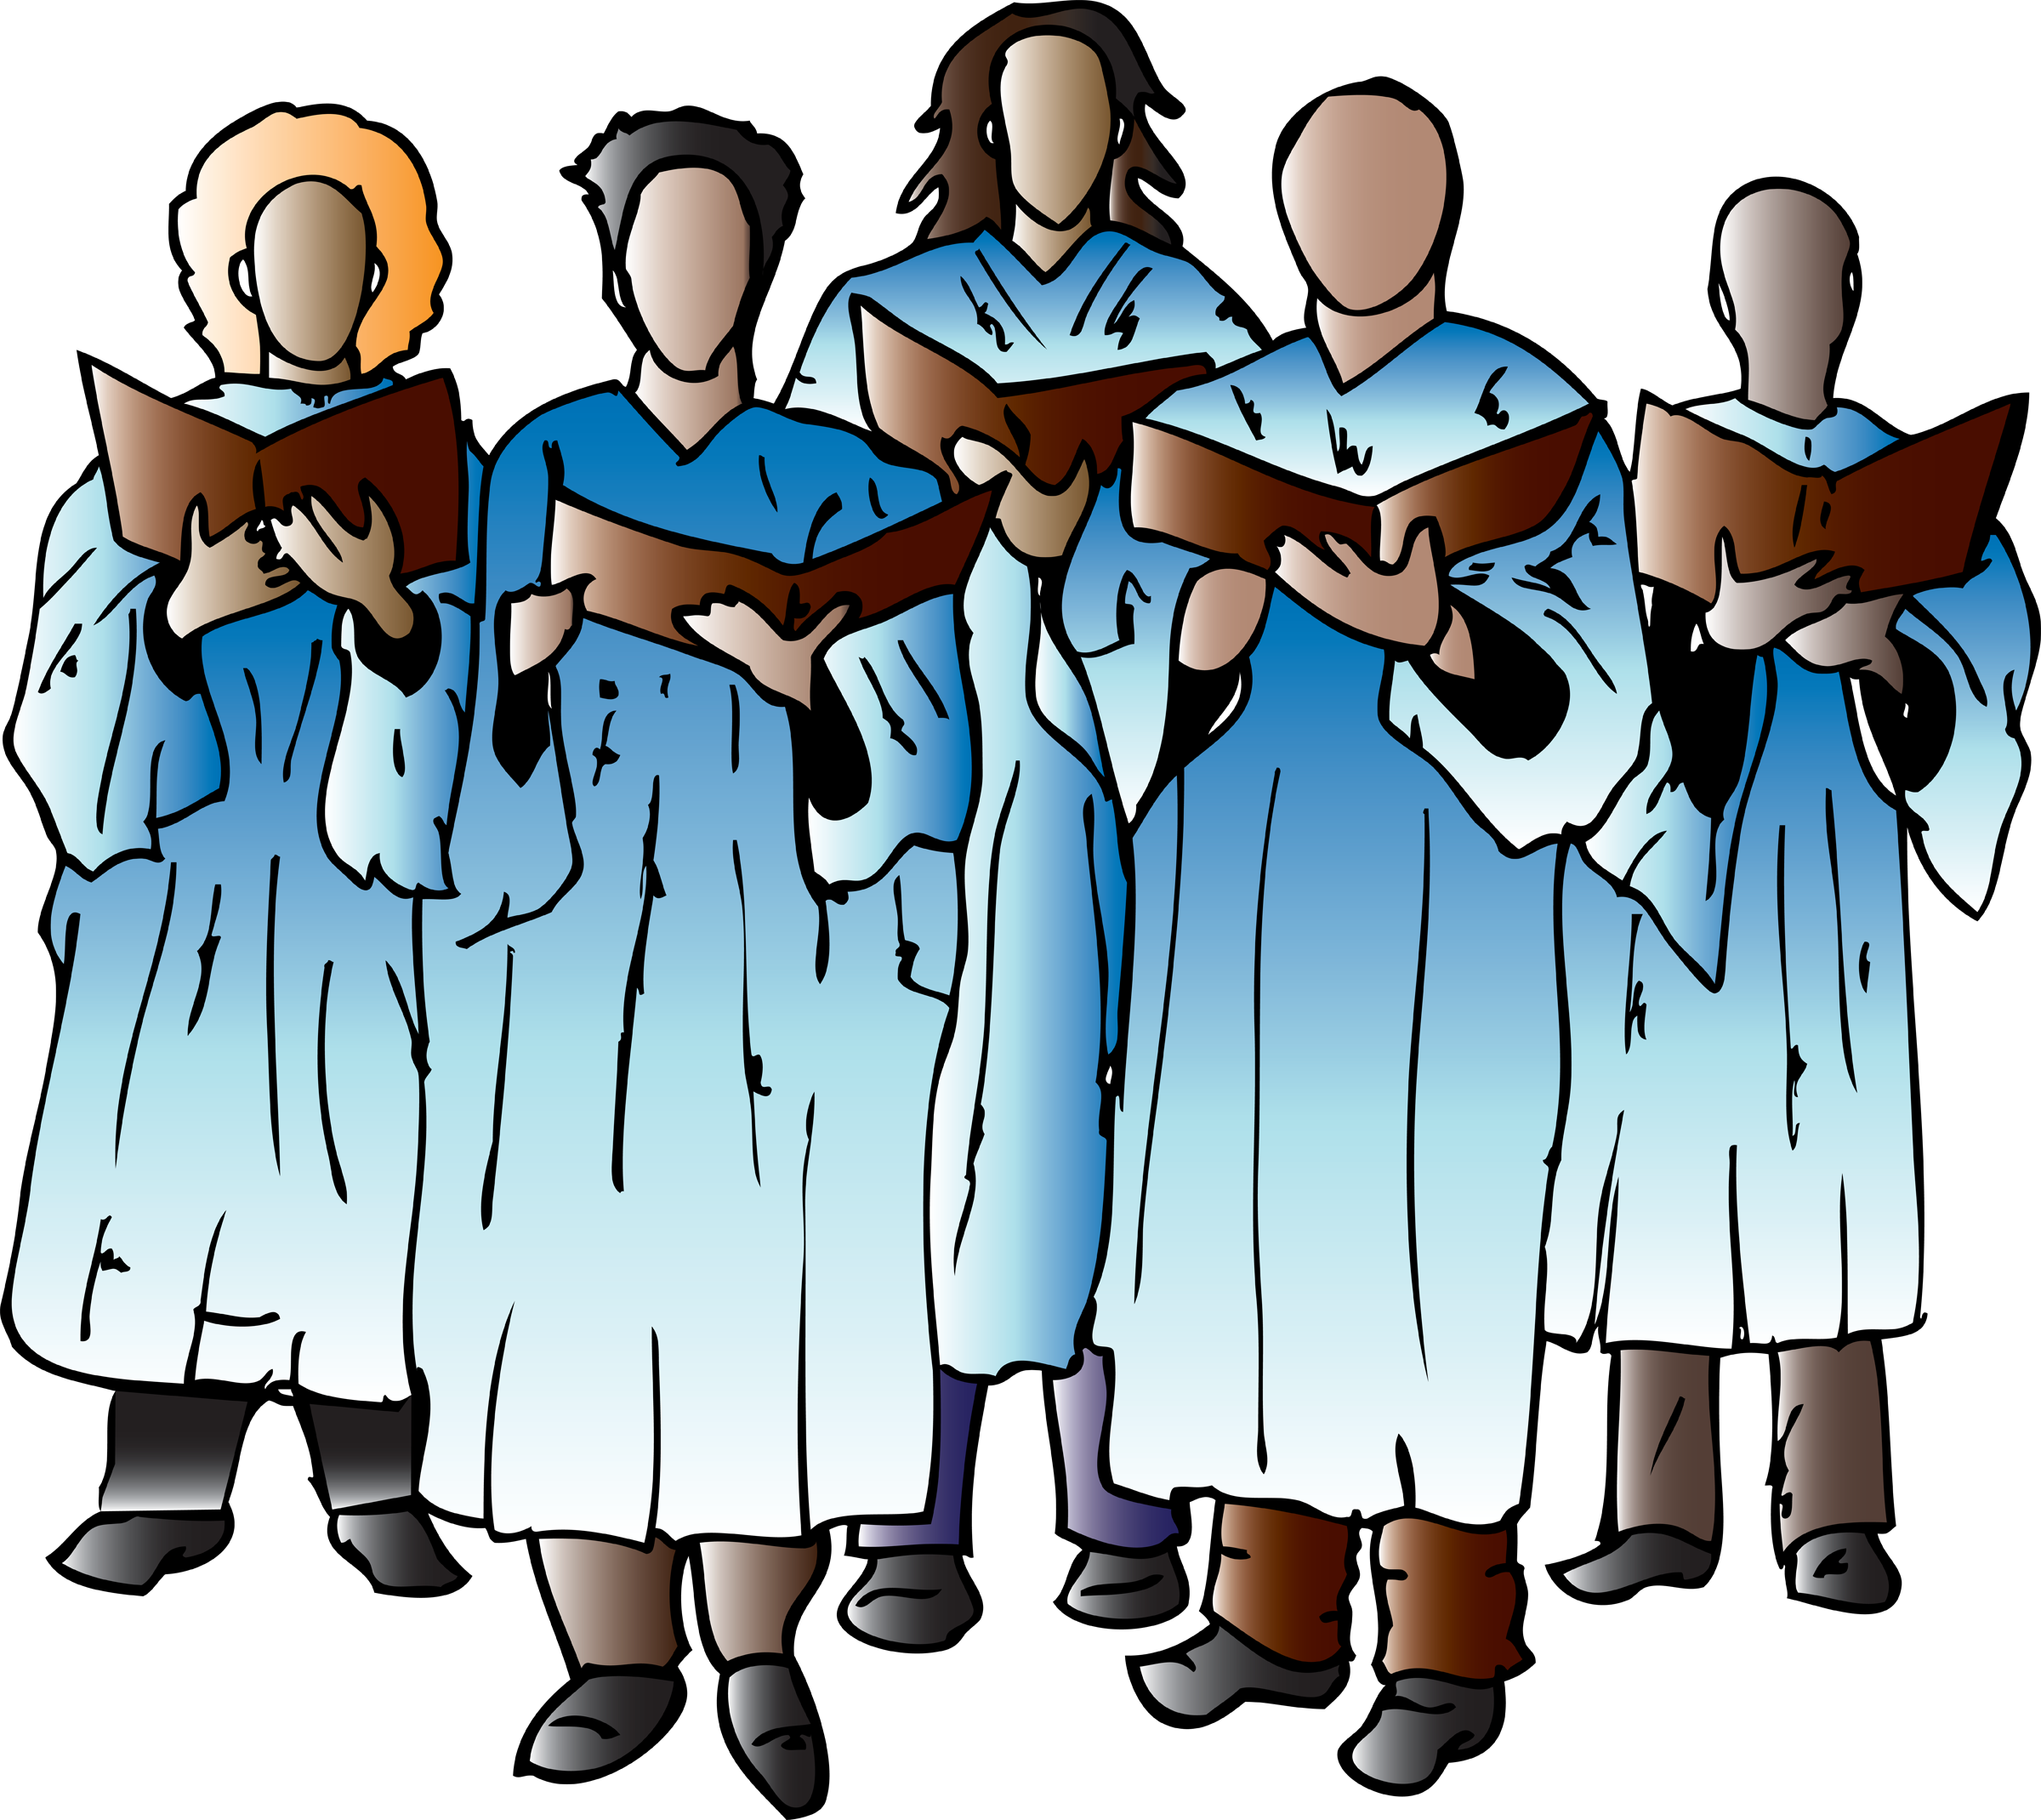 mennonites clipart church choir